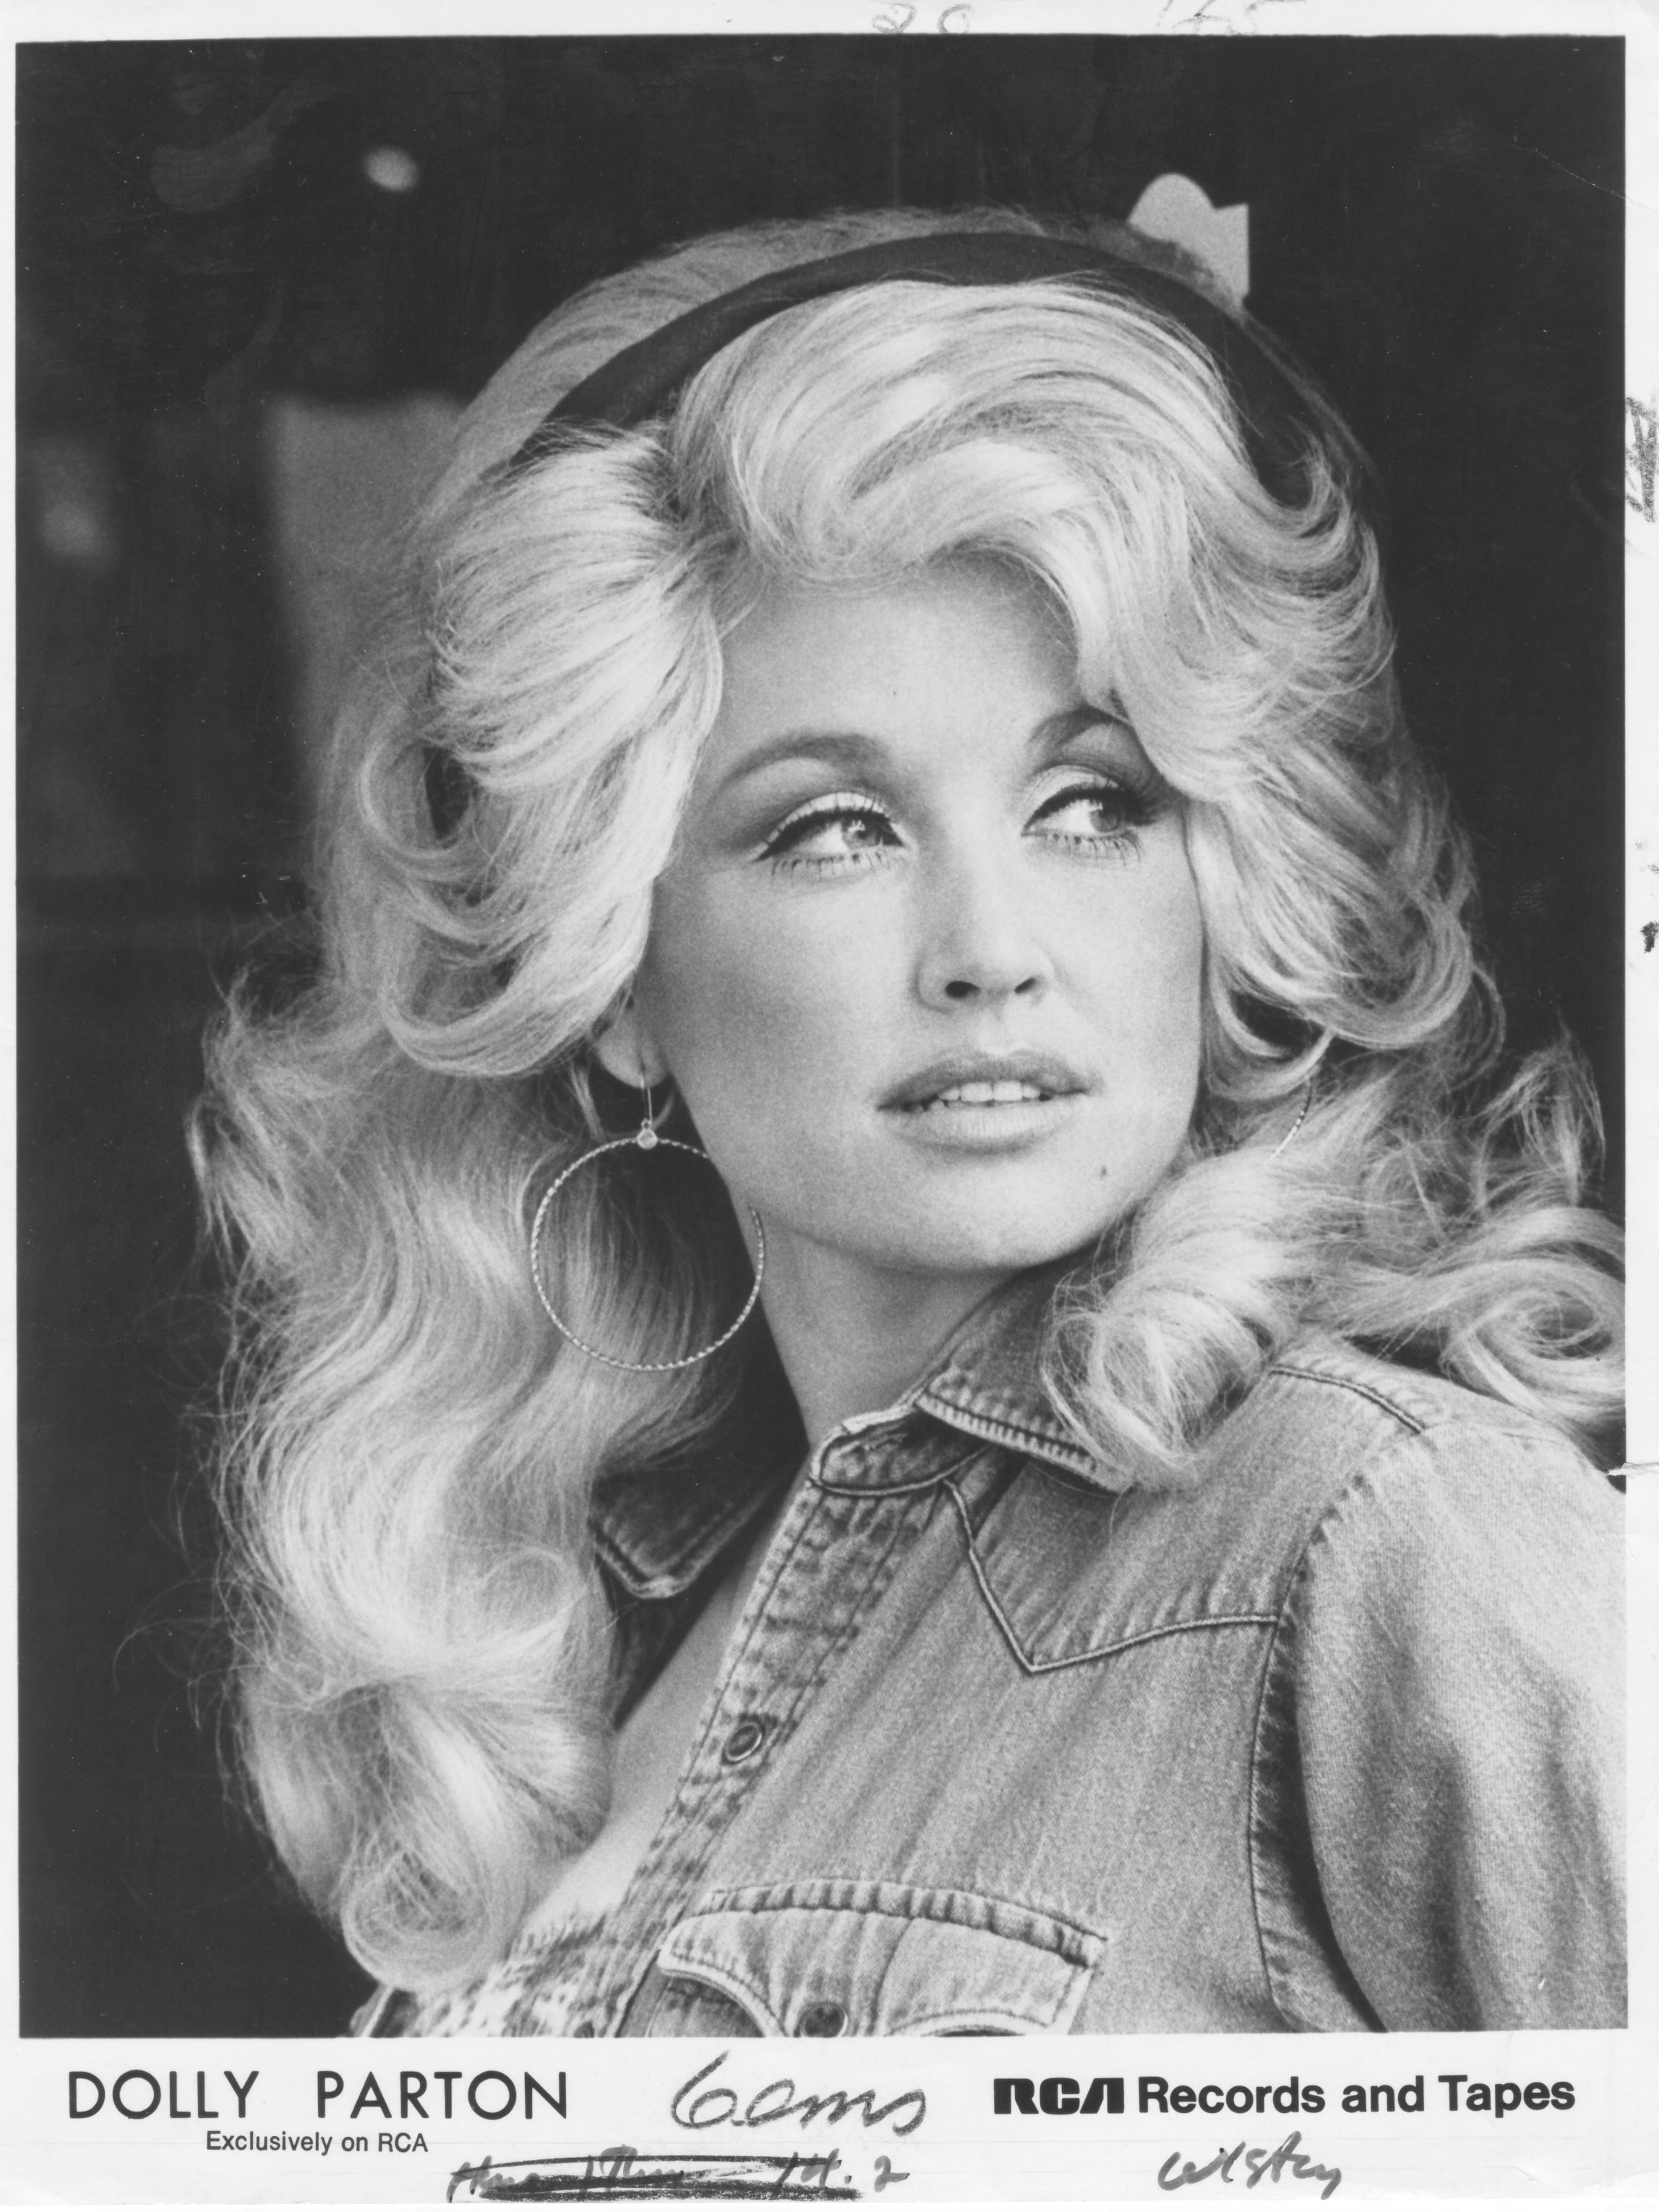 Ken Burns Country Music Dolly Parton Steals Show In Documentary